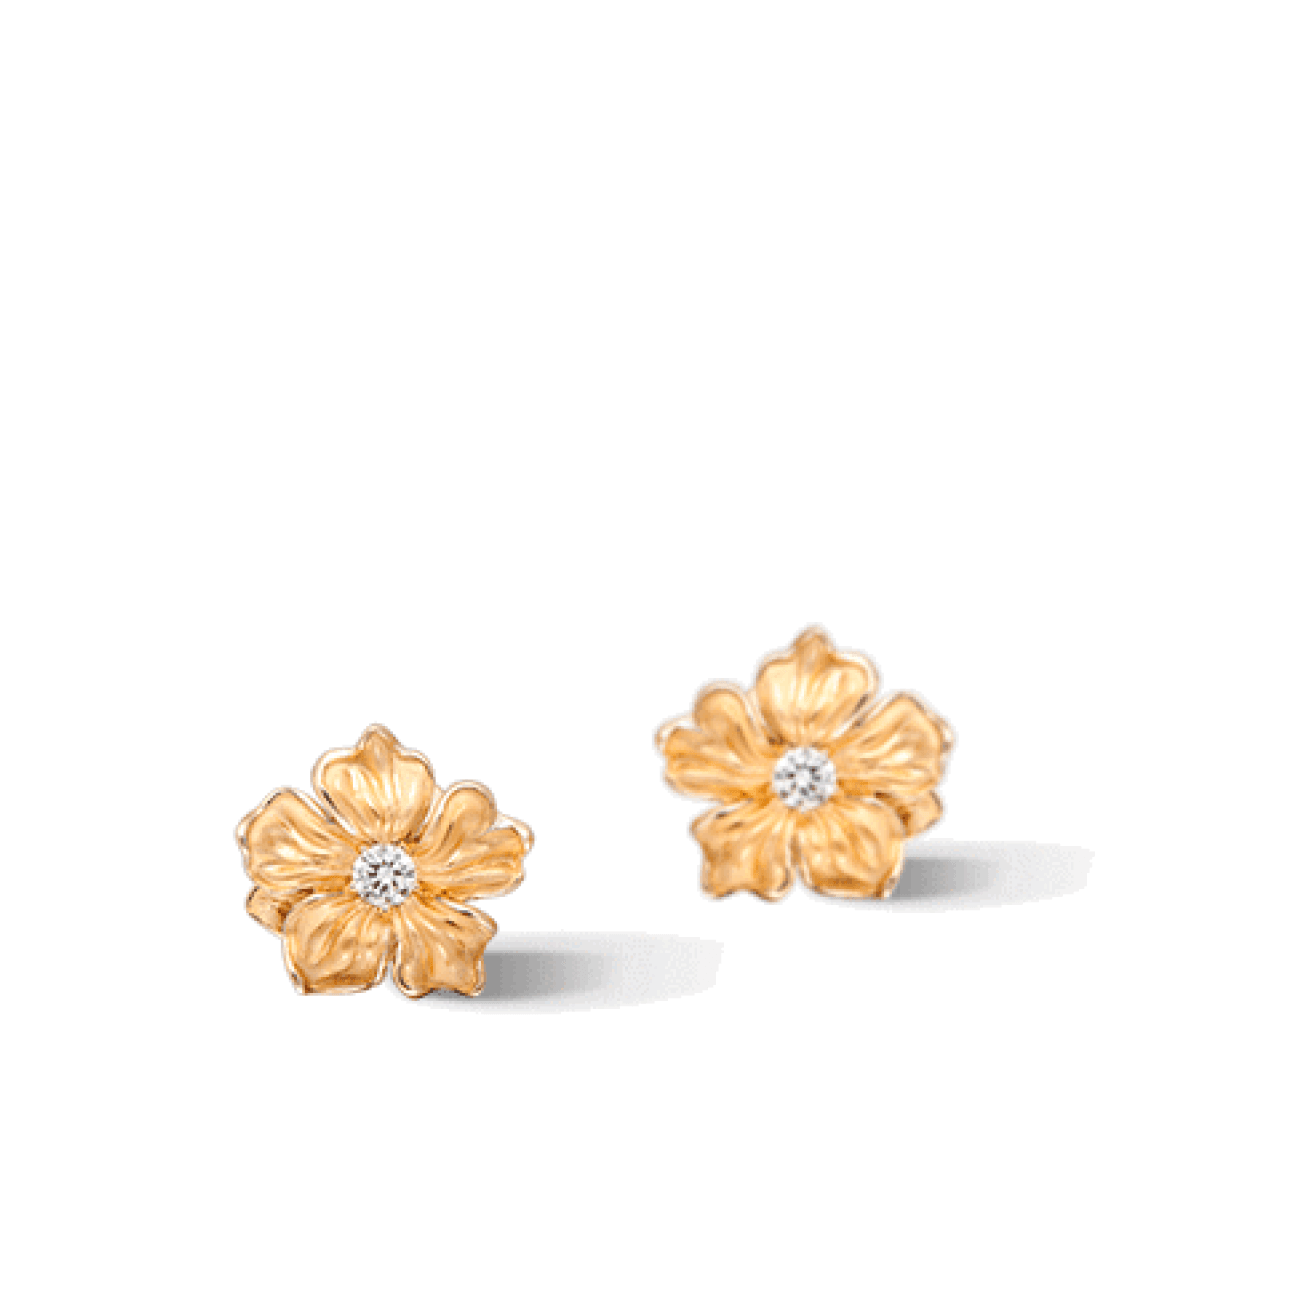 Carrera Y Carrera Jewelry - Emperatriz Medium Earrings | Manfredi Jewels